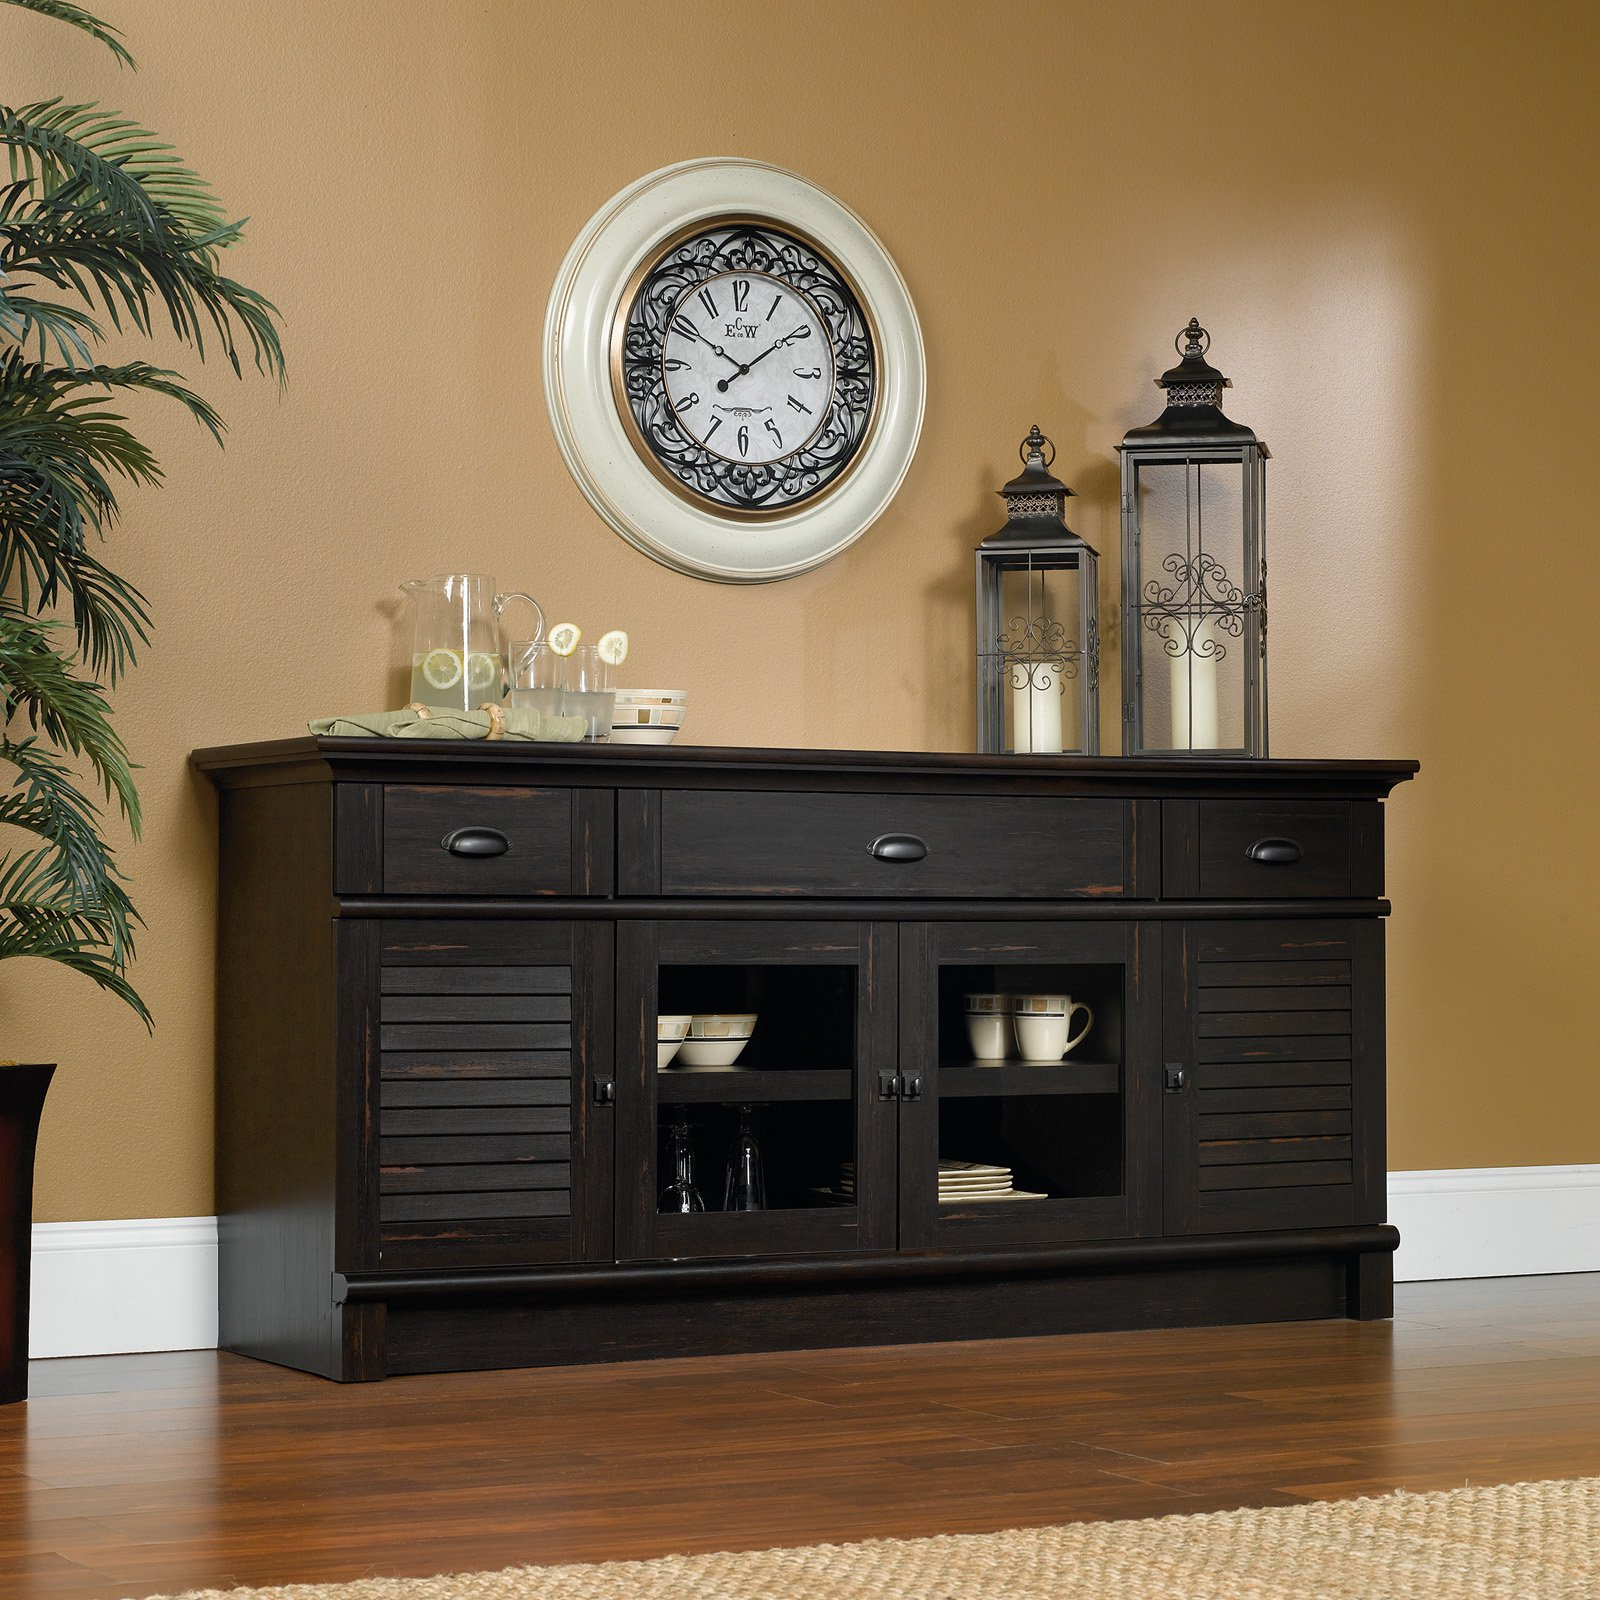 Sauder Harbor View Credenza/TV Stand